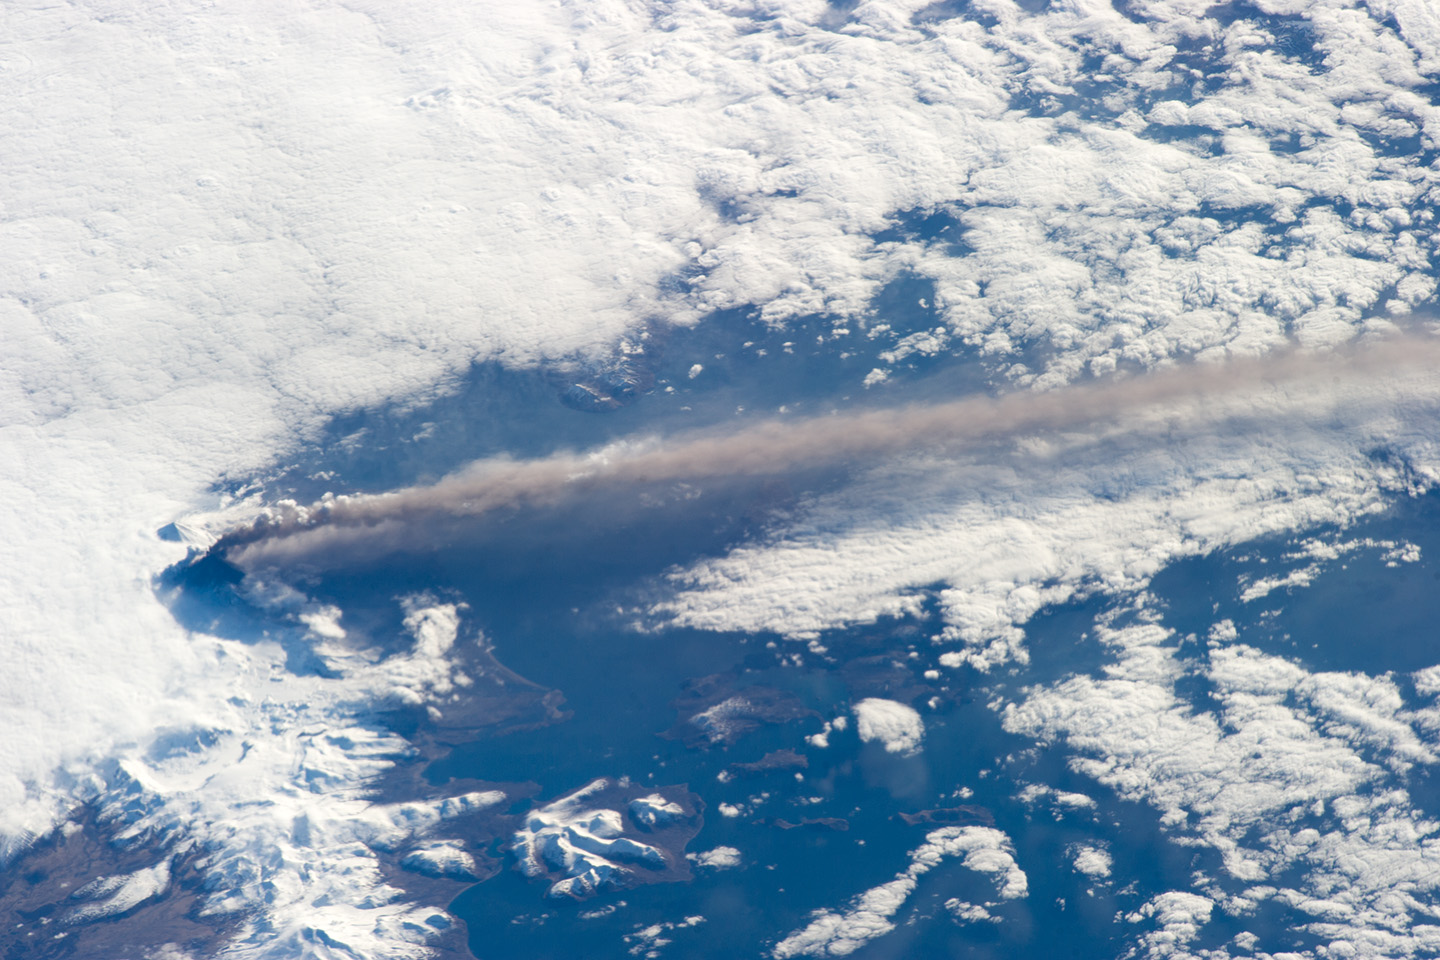 View larger. | The volcanic plume extended southeastward over the North Pacific Ocean. Image via NASA.